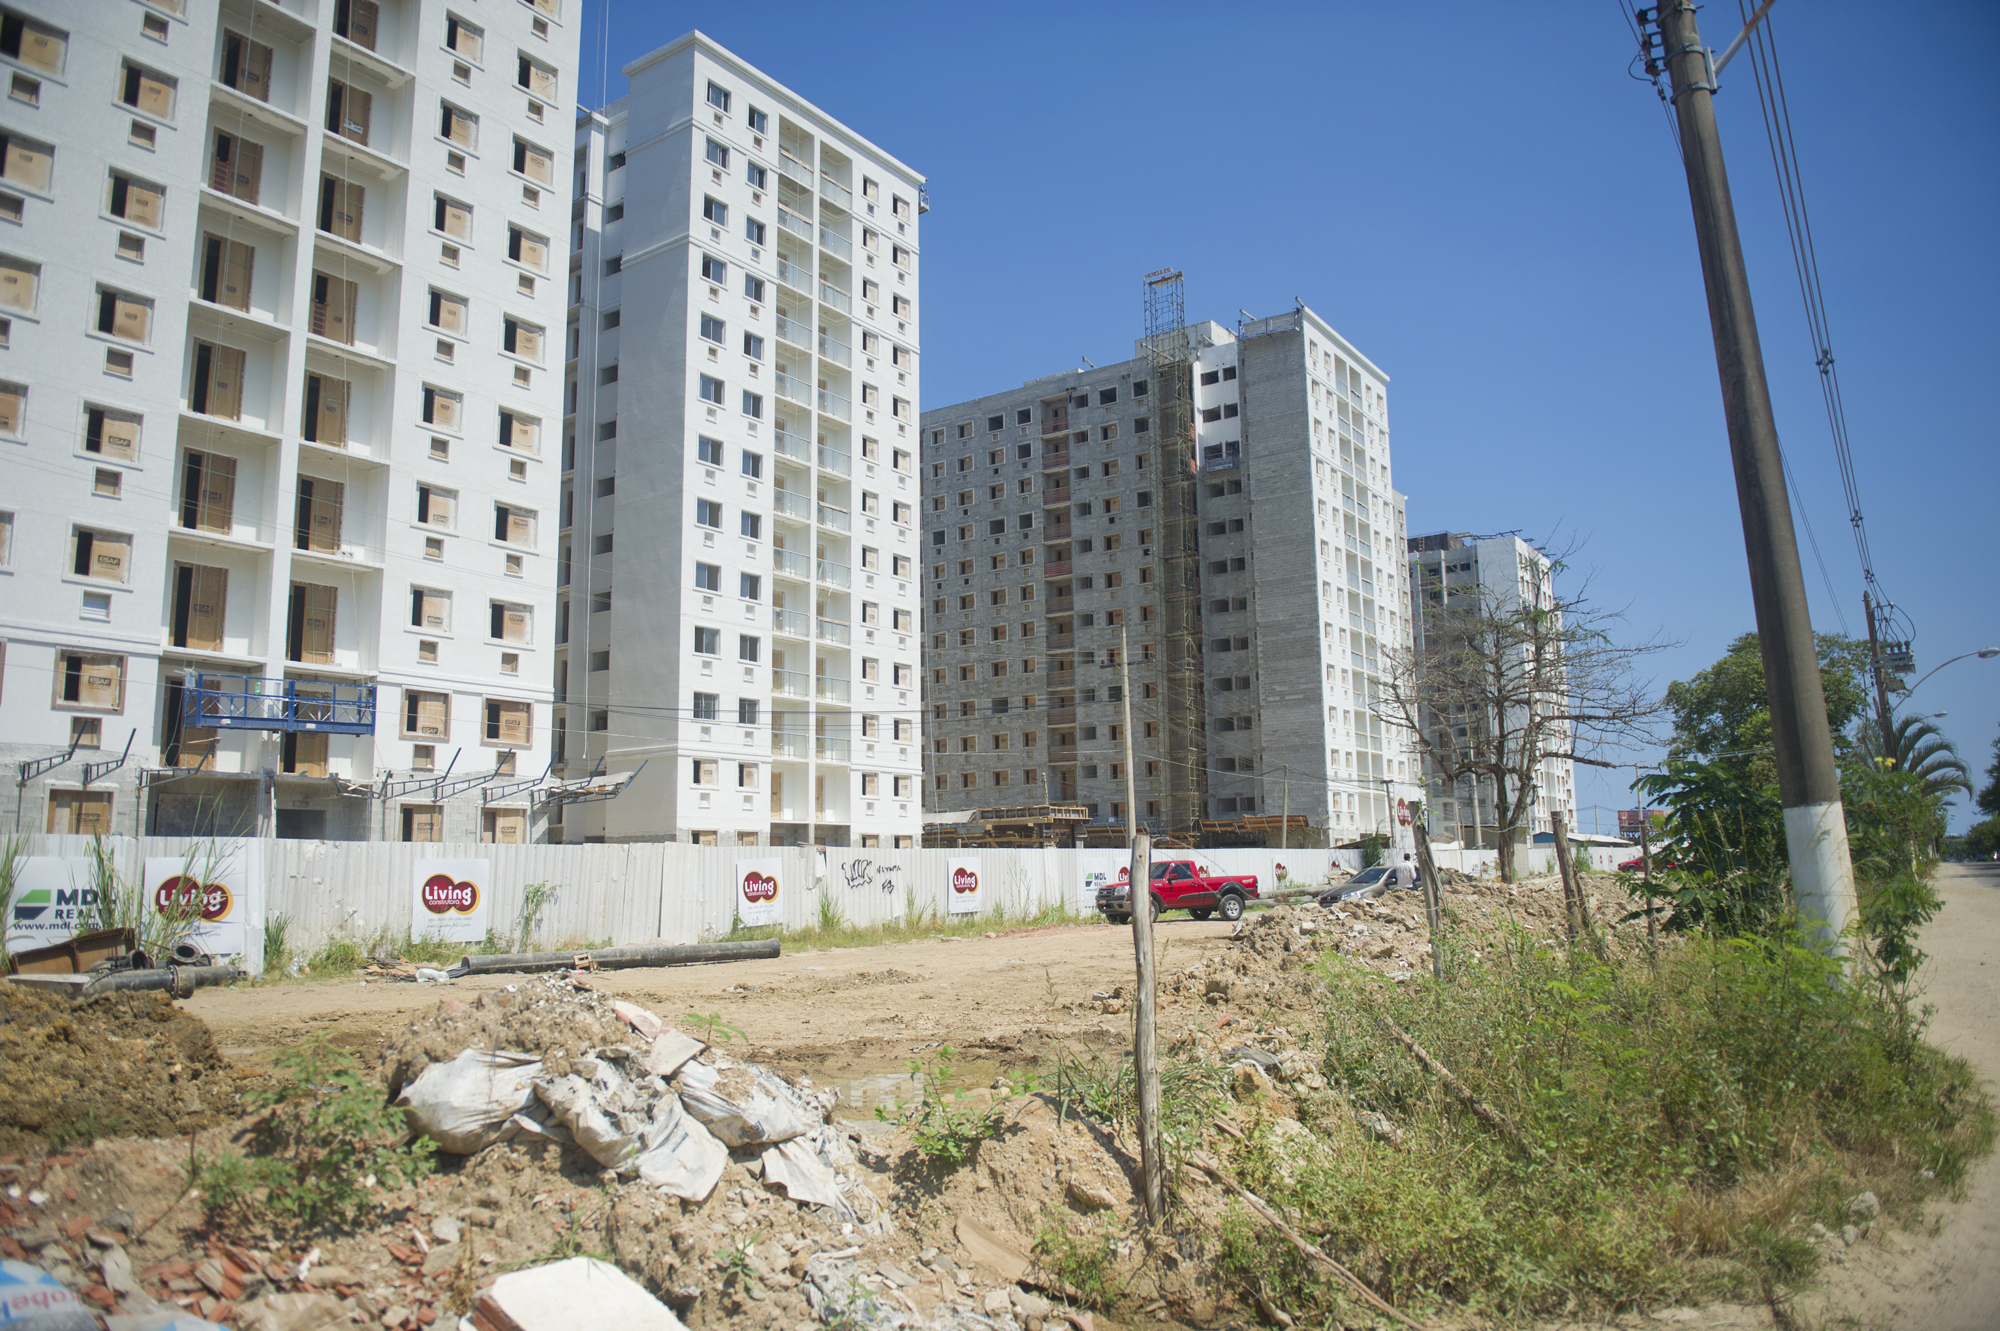 Construction in an area near Brito's home includes both low-end and high-end condominium development.